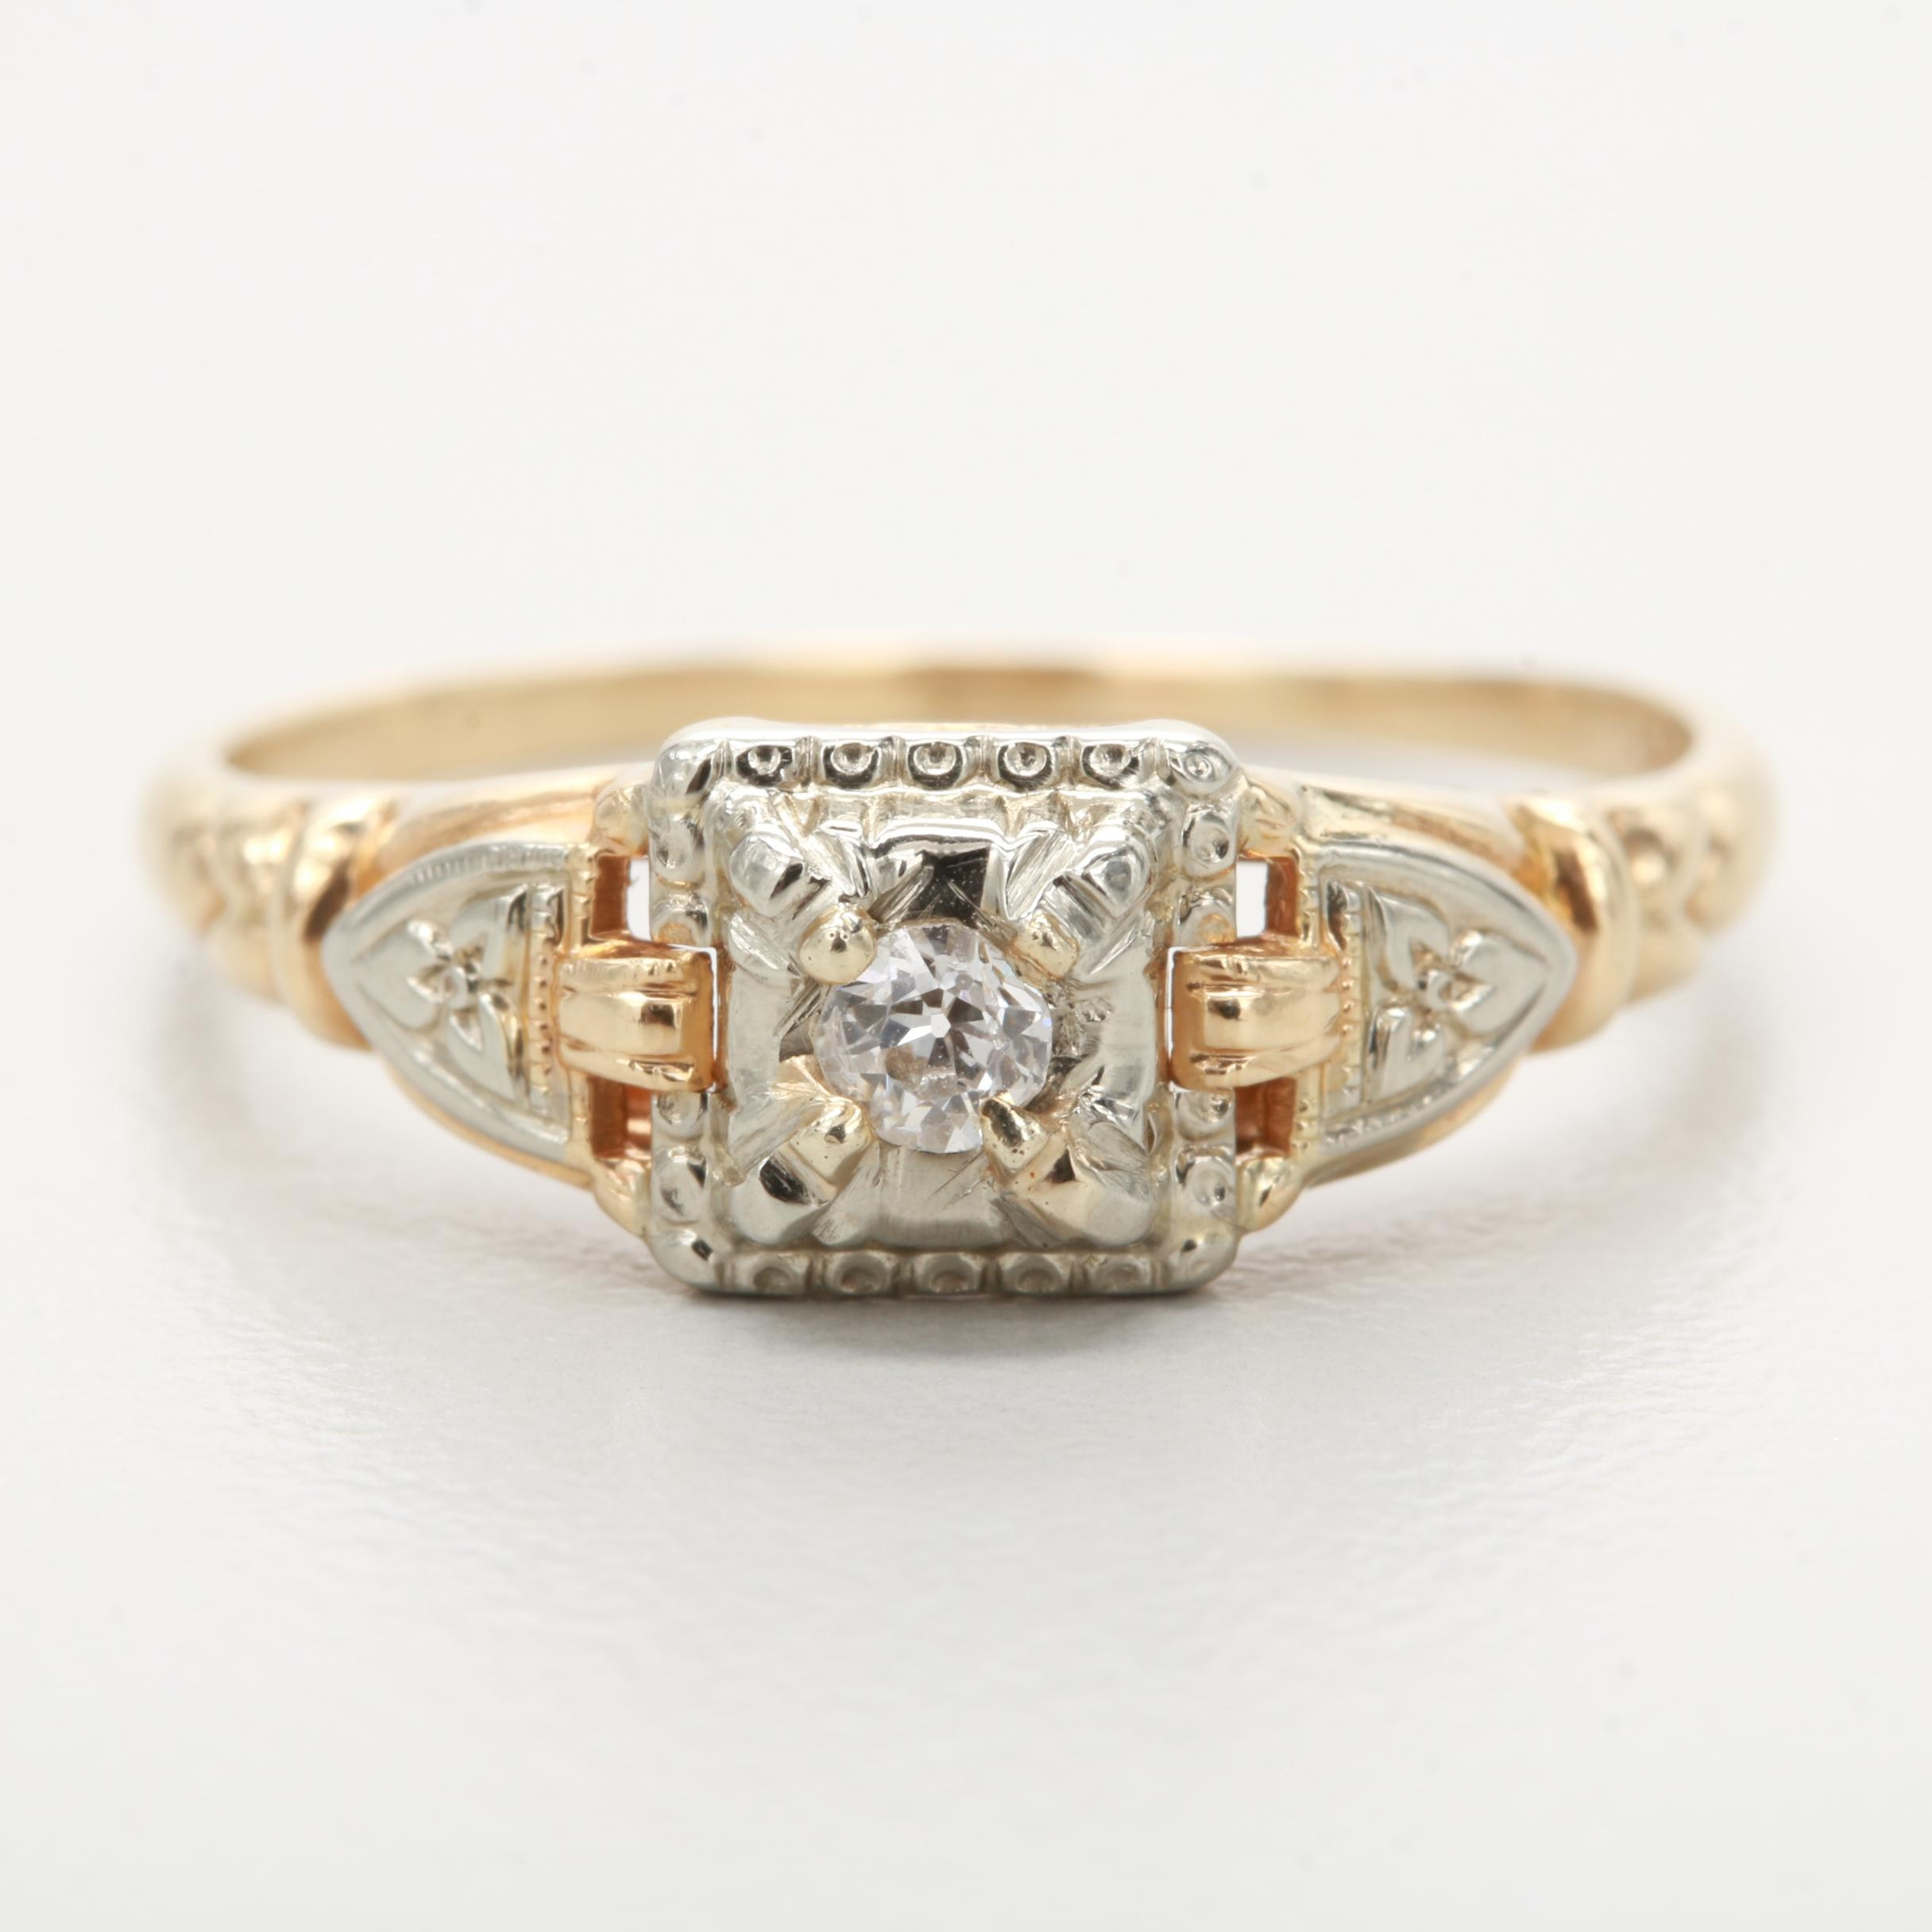 14K Yellow Gold Diamond Ring with 18K White Gold Trim